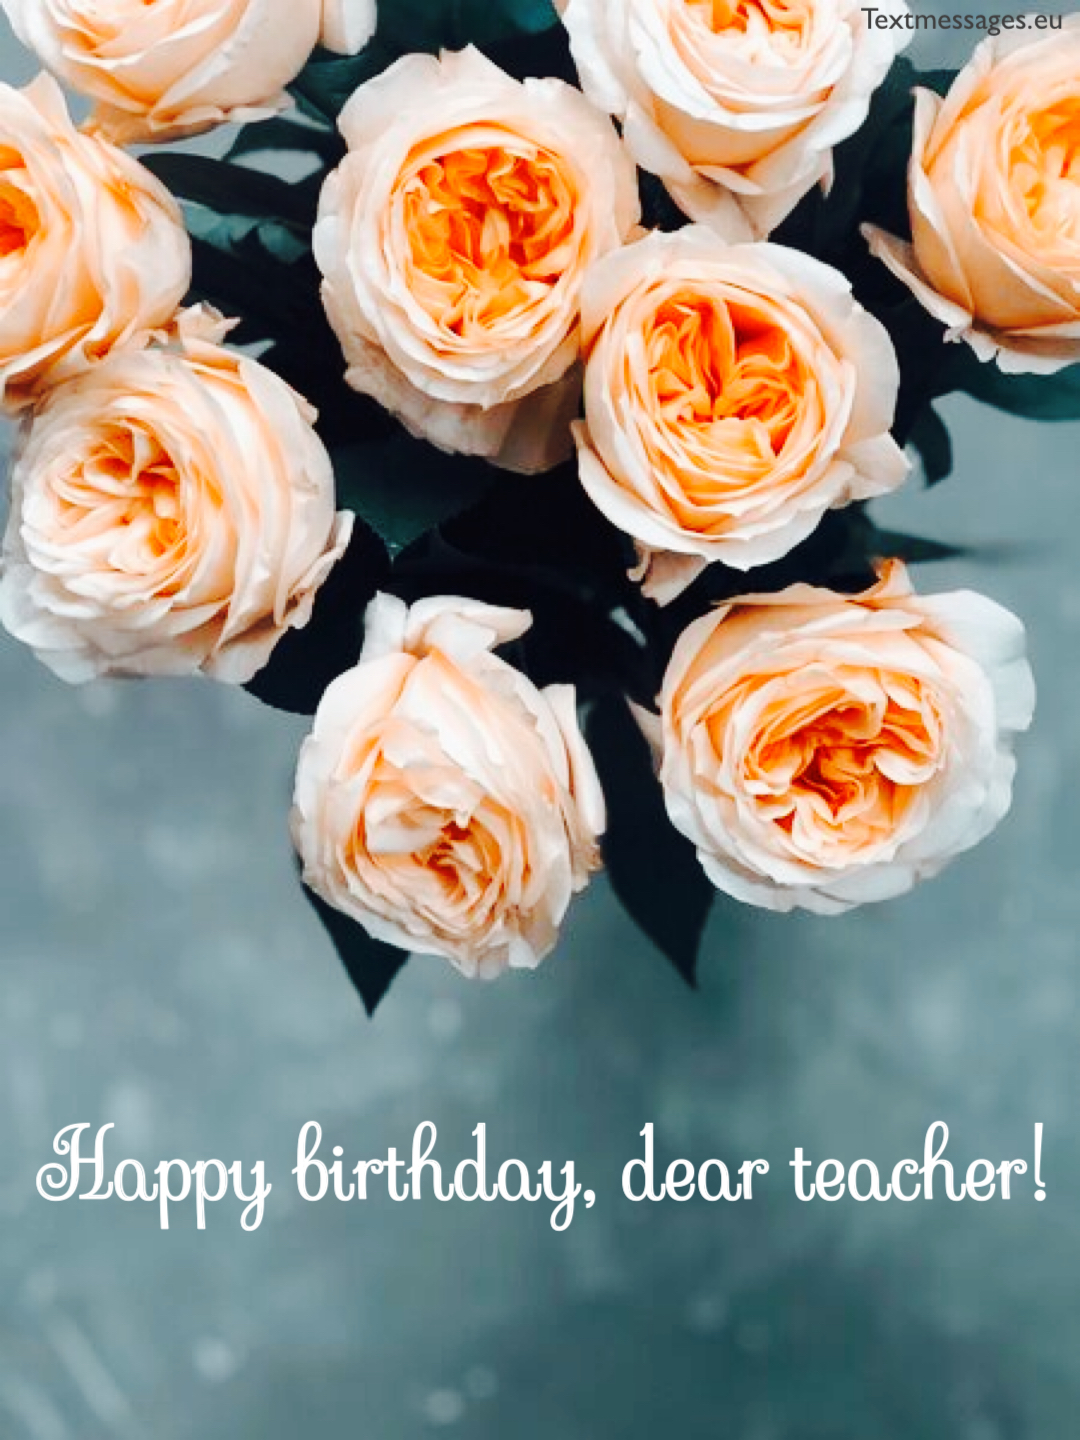 Happy Birthday Wishes For Teacher Textmessageseu